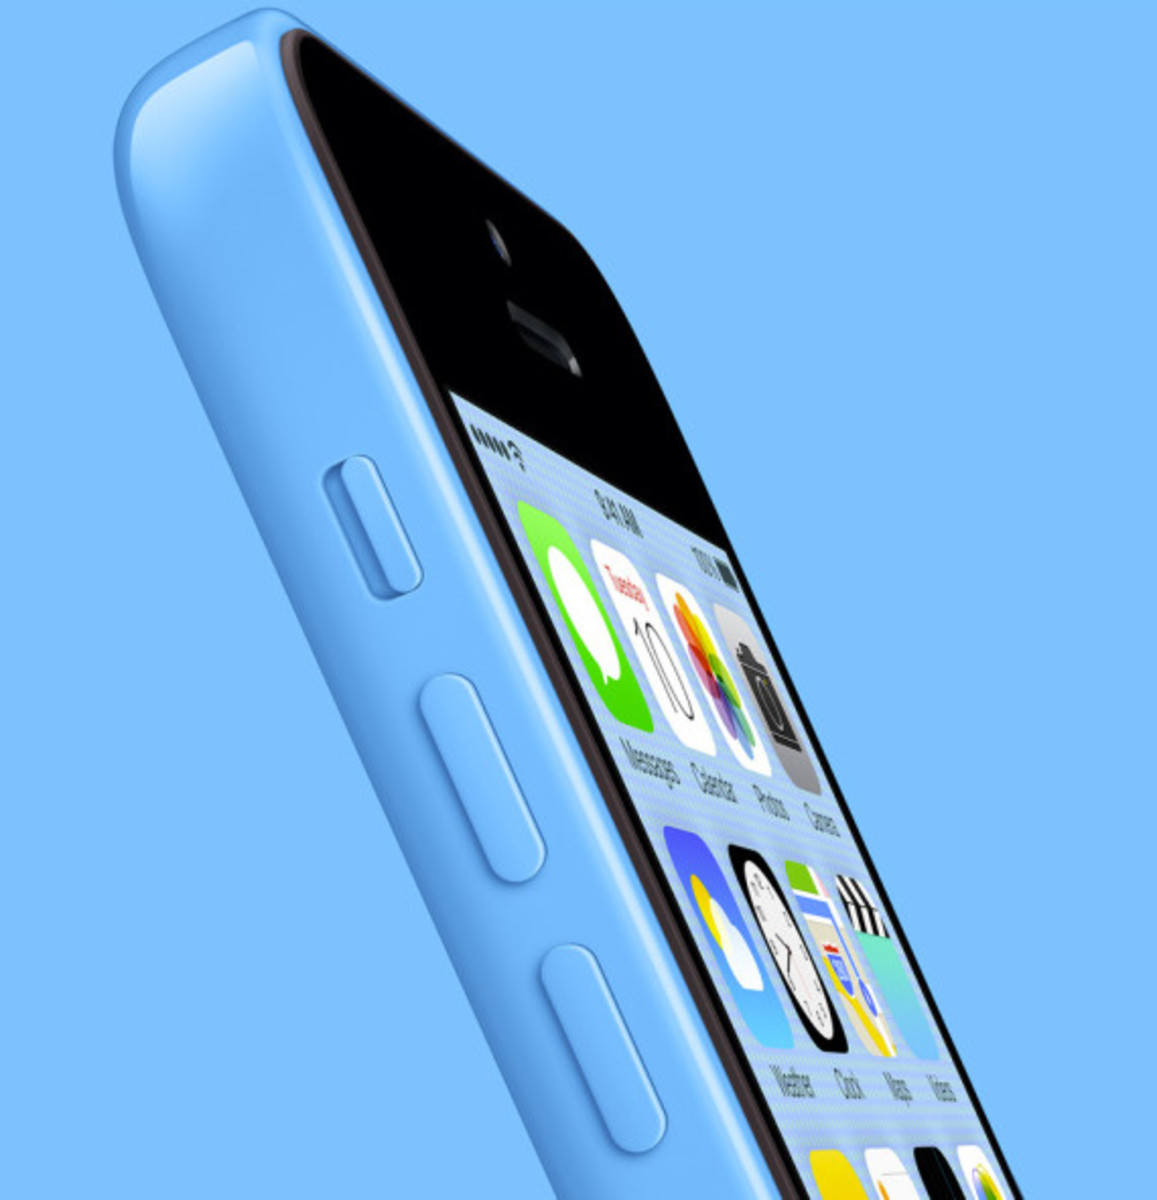 Apple iPhone 5C - Officially Unveiled - 5